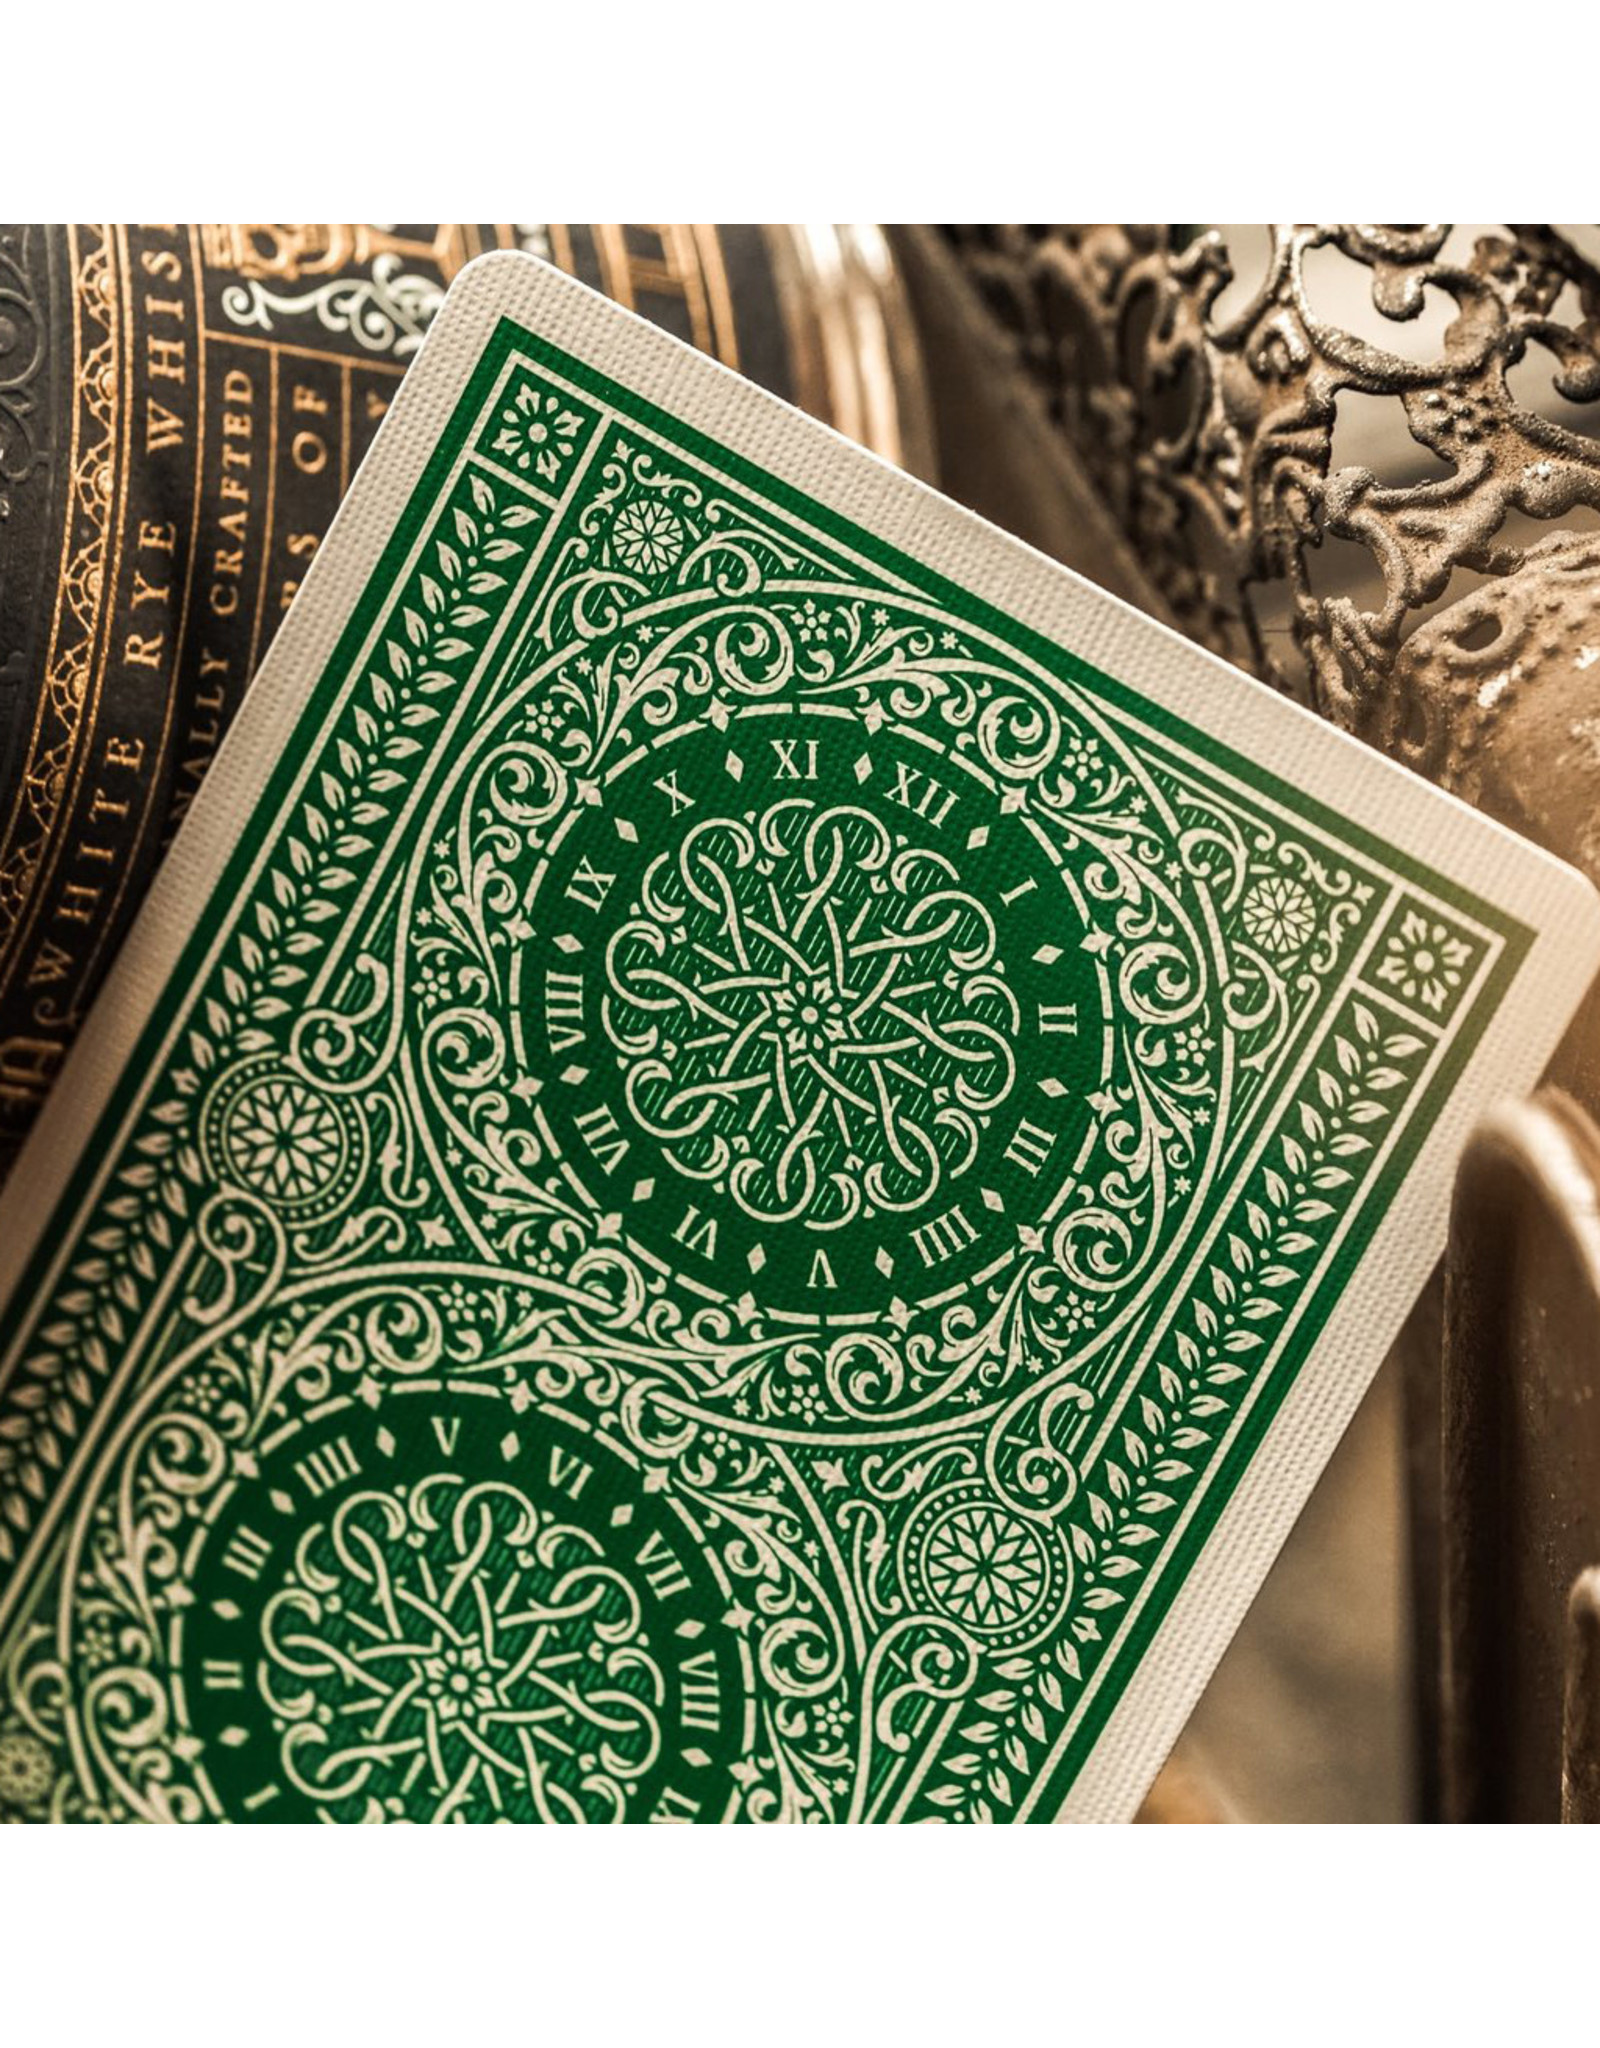 Theory 11 Green Tycoon Playing Cards